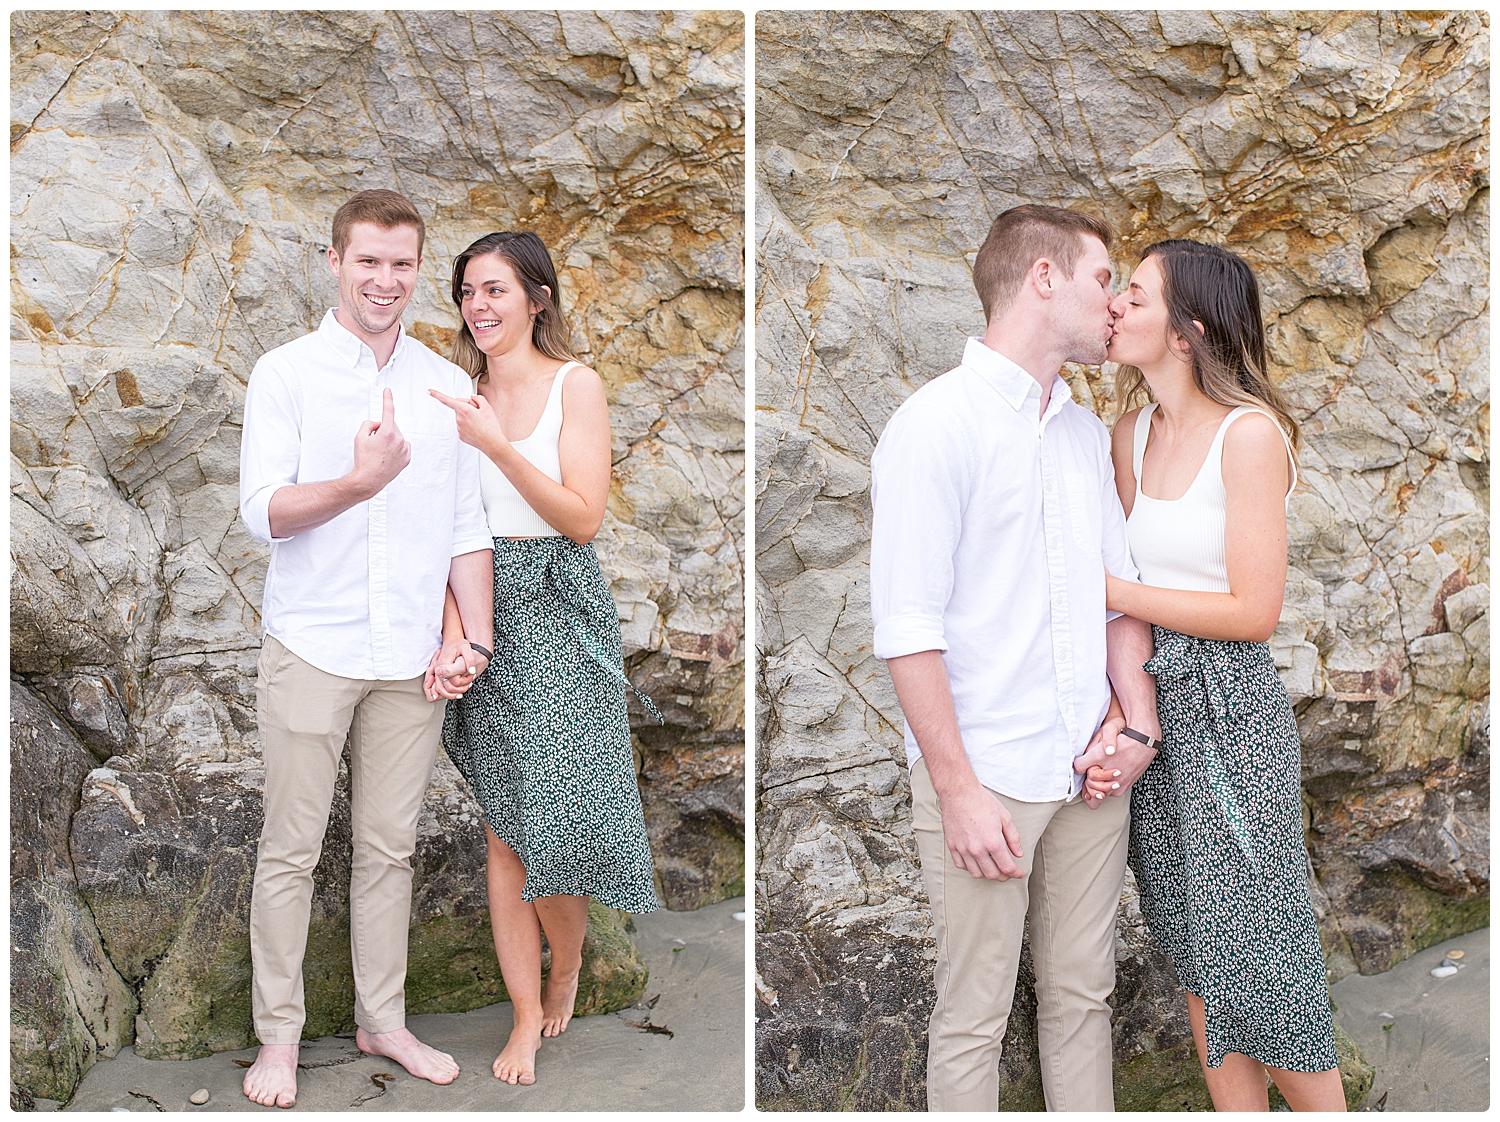 061919_EthanEmma_proposal_Renoda Campbell Photography-7034.jpg